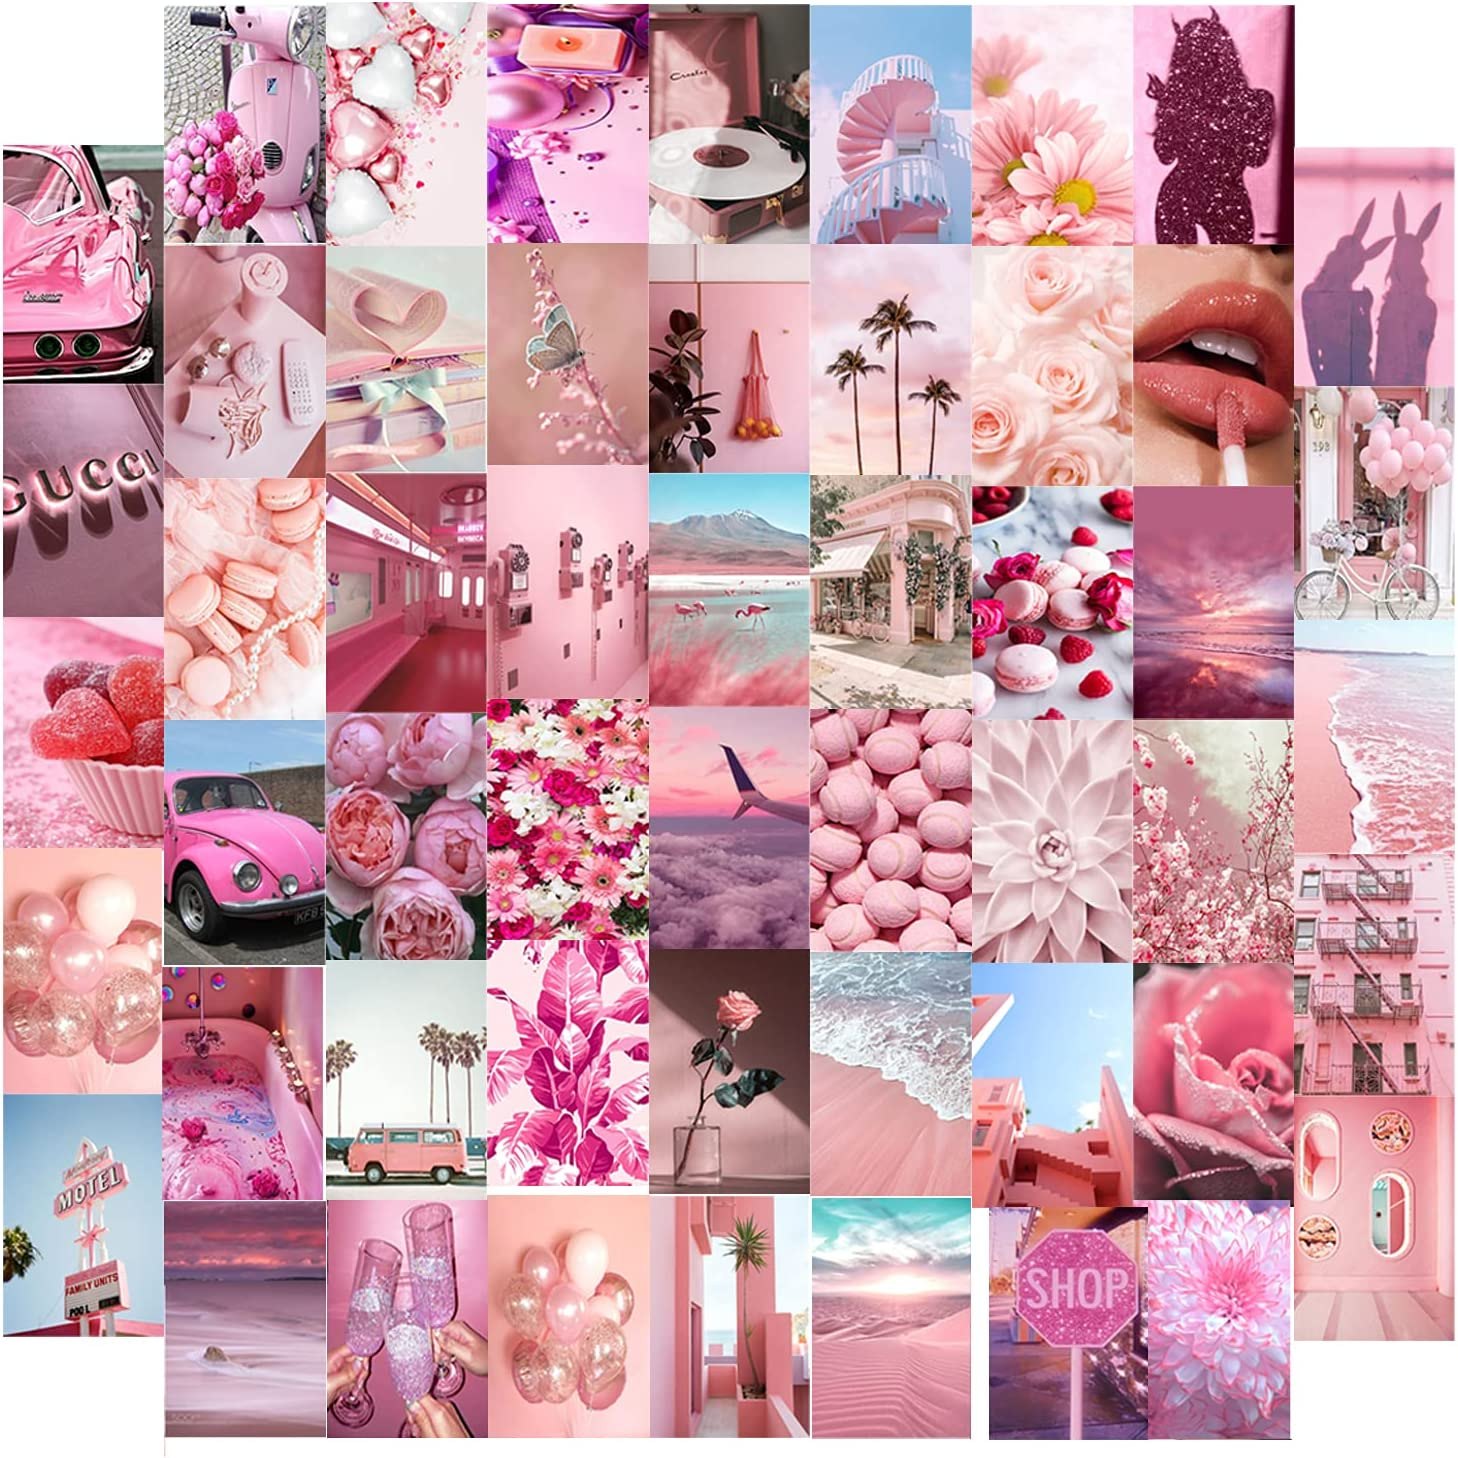 Pink Wall Collage Kit, Aesthetic Pictures Bedroom Decor for Teen Girls, Light Pink Color Dorm Photo Display for Cute Room Decor, Wall Décor (52 PCS 4*6